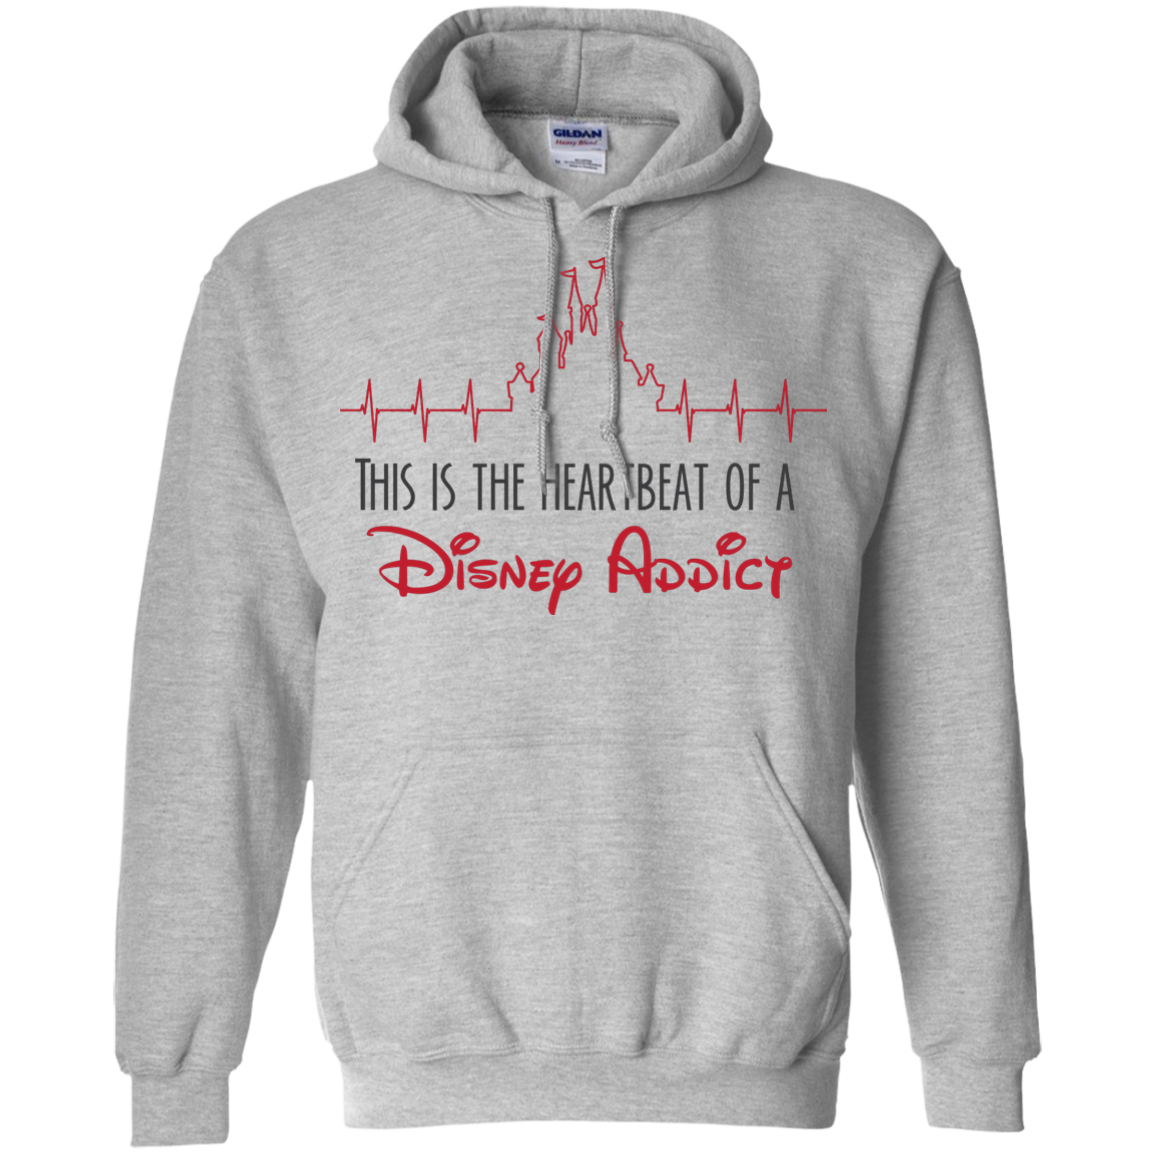 Heartbeat - Pullover Hoodie 8 oz - Monday Monday